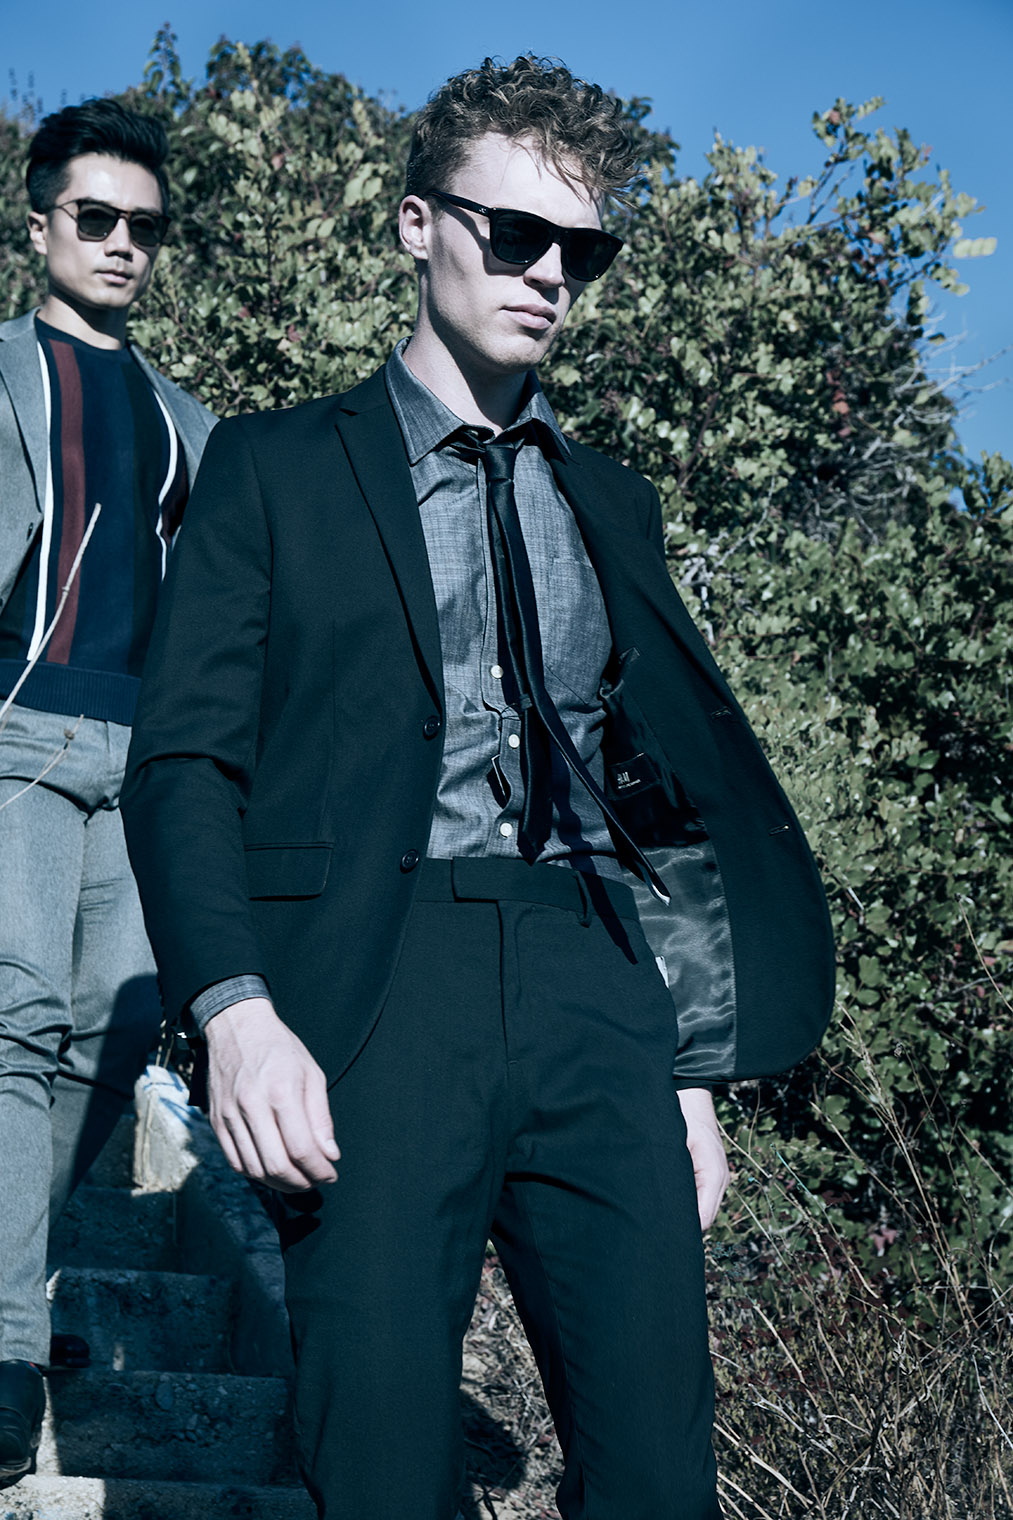 Mens Fashion Photography - The Cool Walk